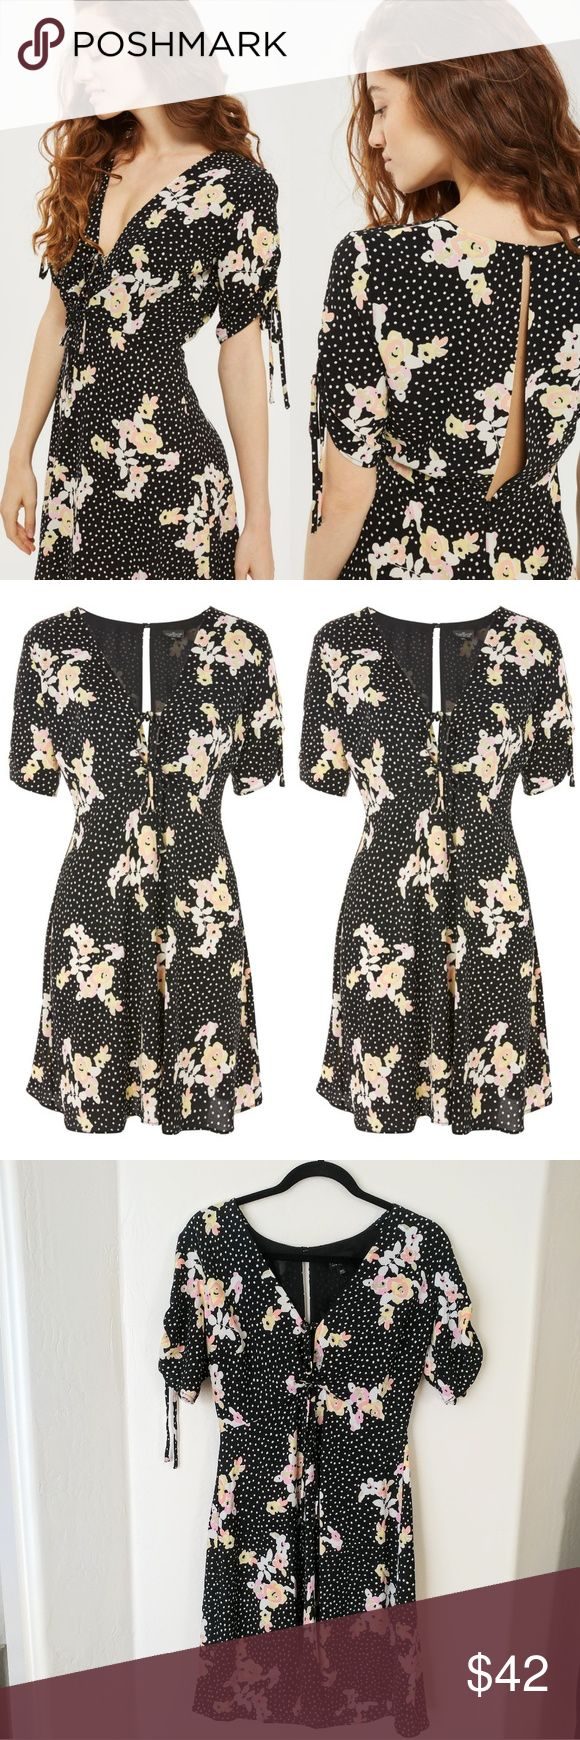 """NWOT Topshop TALL Spot And Floral Tea Dress Embrace the floral trend this season with this printed tea dress. With a spot and yellow floral pattern all over, it features a plunge neckline with tie detailing. Pair with ankle boots for an edgy trans-seasonal look.   Condition: new without tag Size: label says 6, i would say it runs smaller. Check measures before ordering. Bust flat 19"""" Waist flat 14.5"""" Length 36.5""""  Short sleeves Open back  98% Polyester, 2% Elastane. Machine wash. Topshop…"""